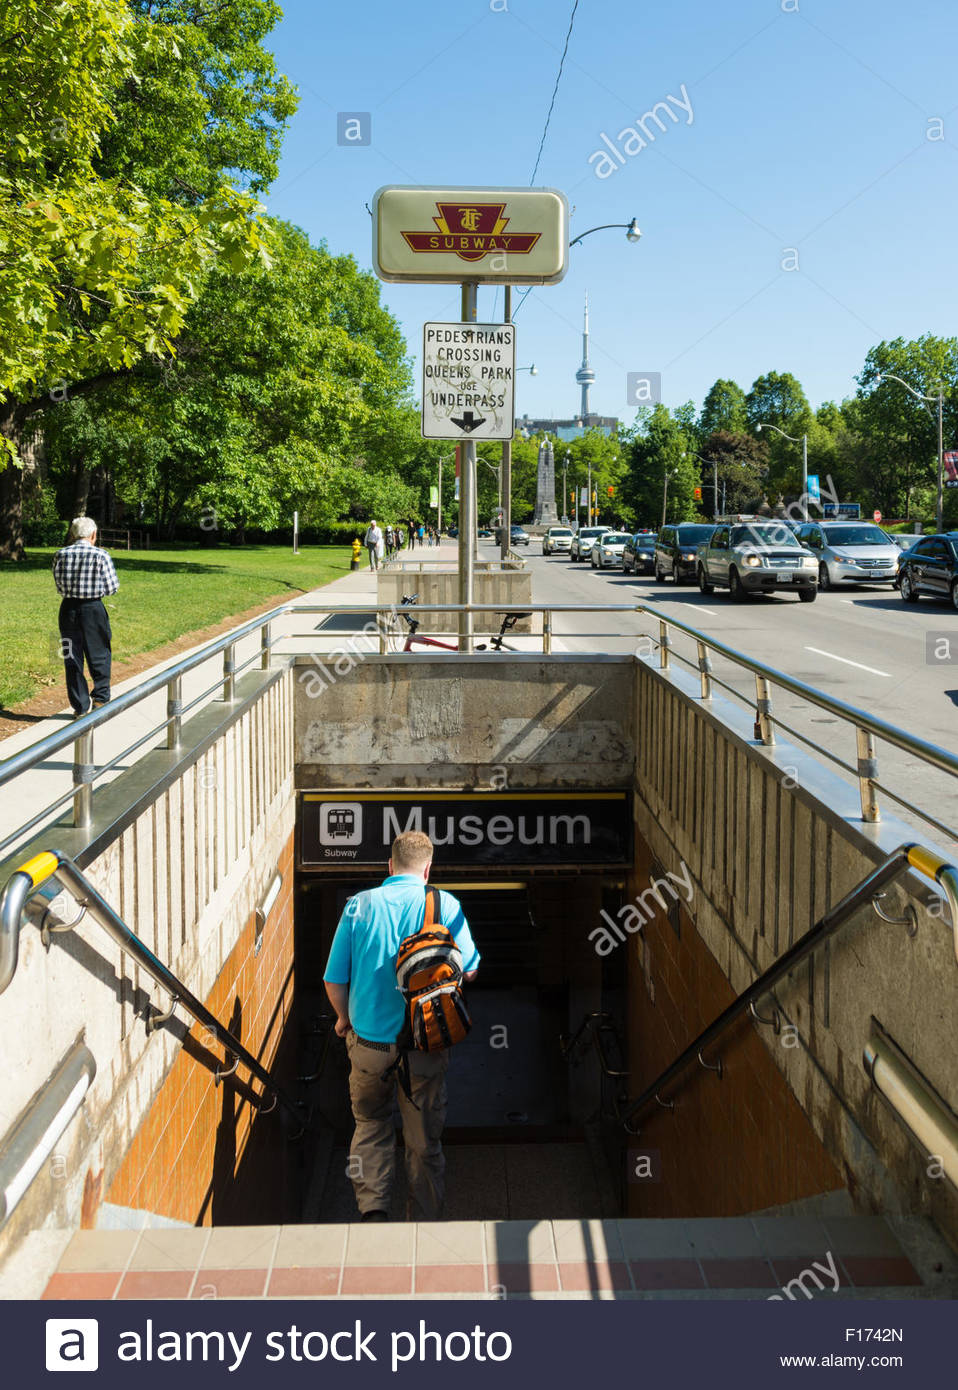 Toronto everyday scenes: Man walking down the stairs of the underpass leading to the Museum subway station. Museum - Stock Image